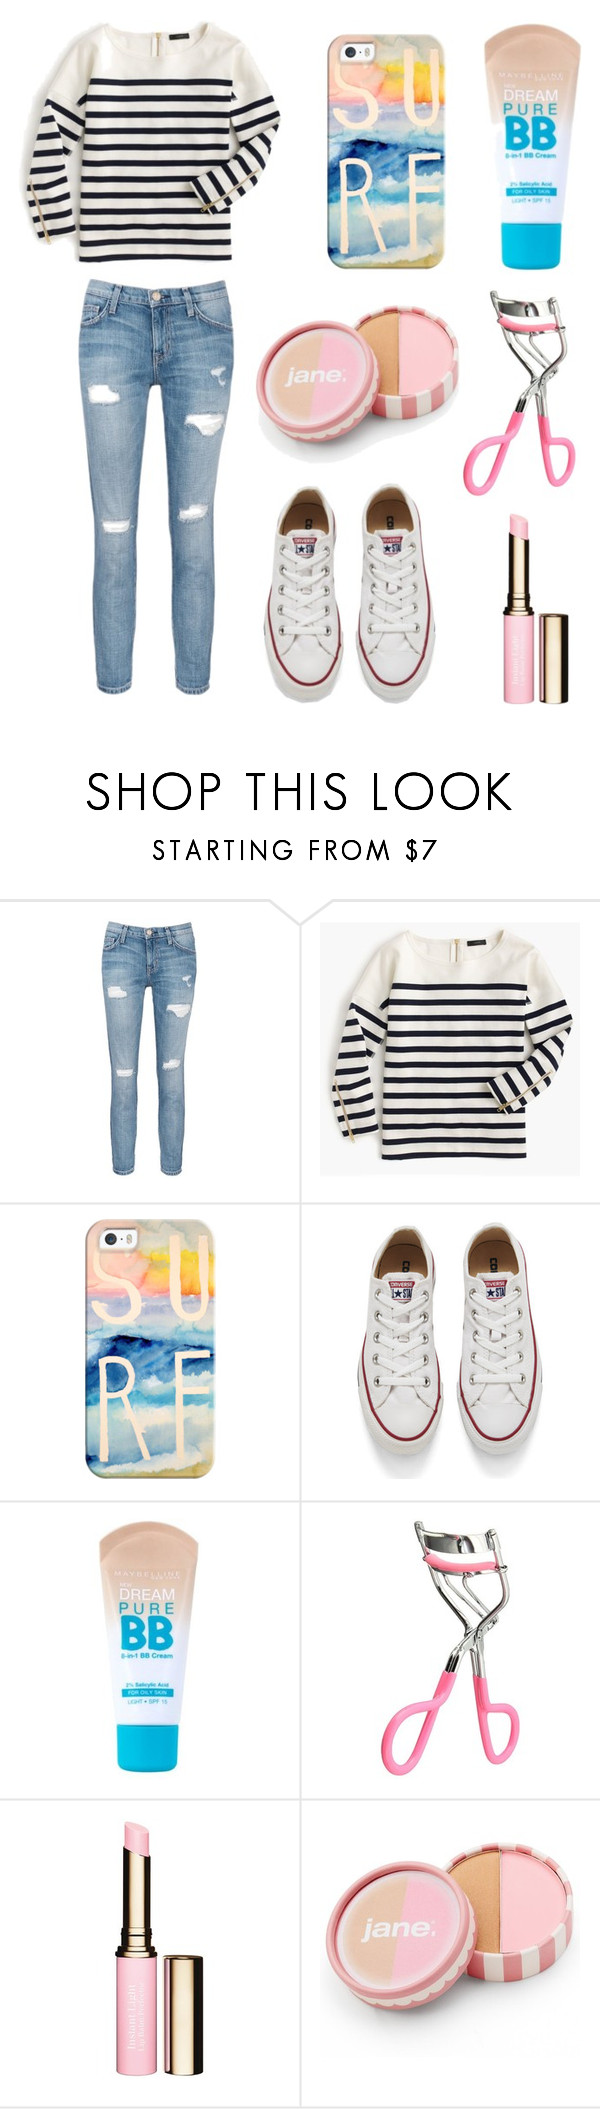 """""""Untitled #37"""" by josie1289 ❤ liked on Polyvore featuring Current/Elliott, J.Crew, Casetify, Converse, Maybelline, Clarins and jane"""